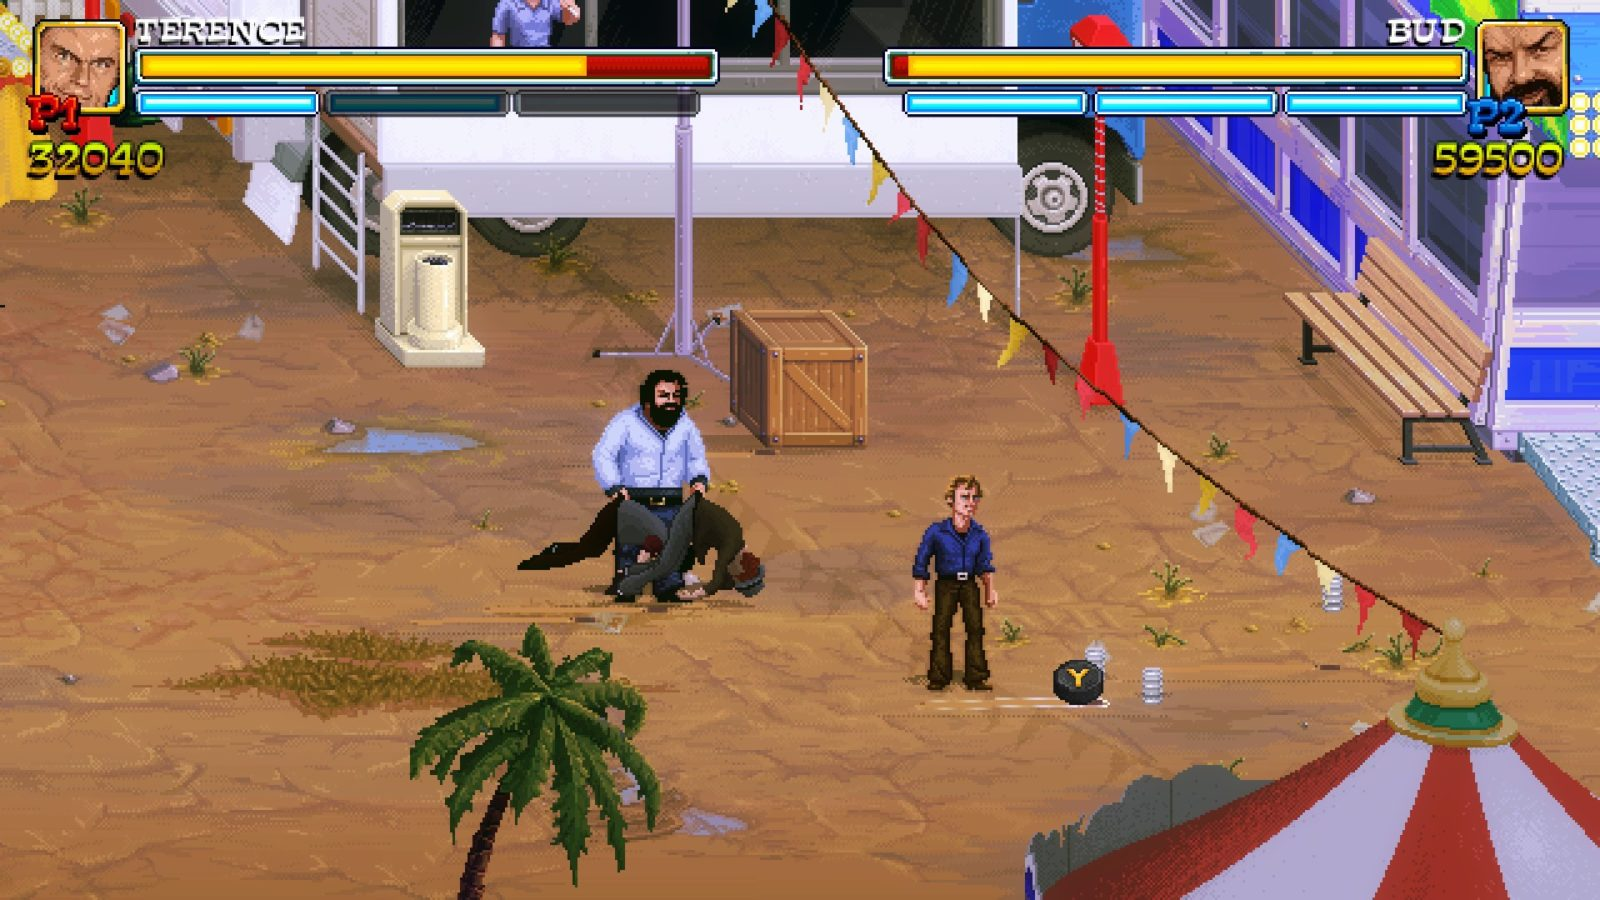 Slaps and Beans, il videogioco di Bud Spencer e Terence Hill